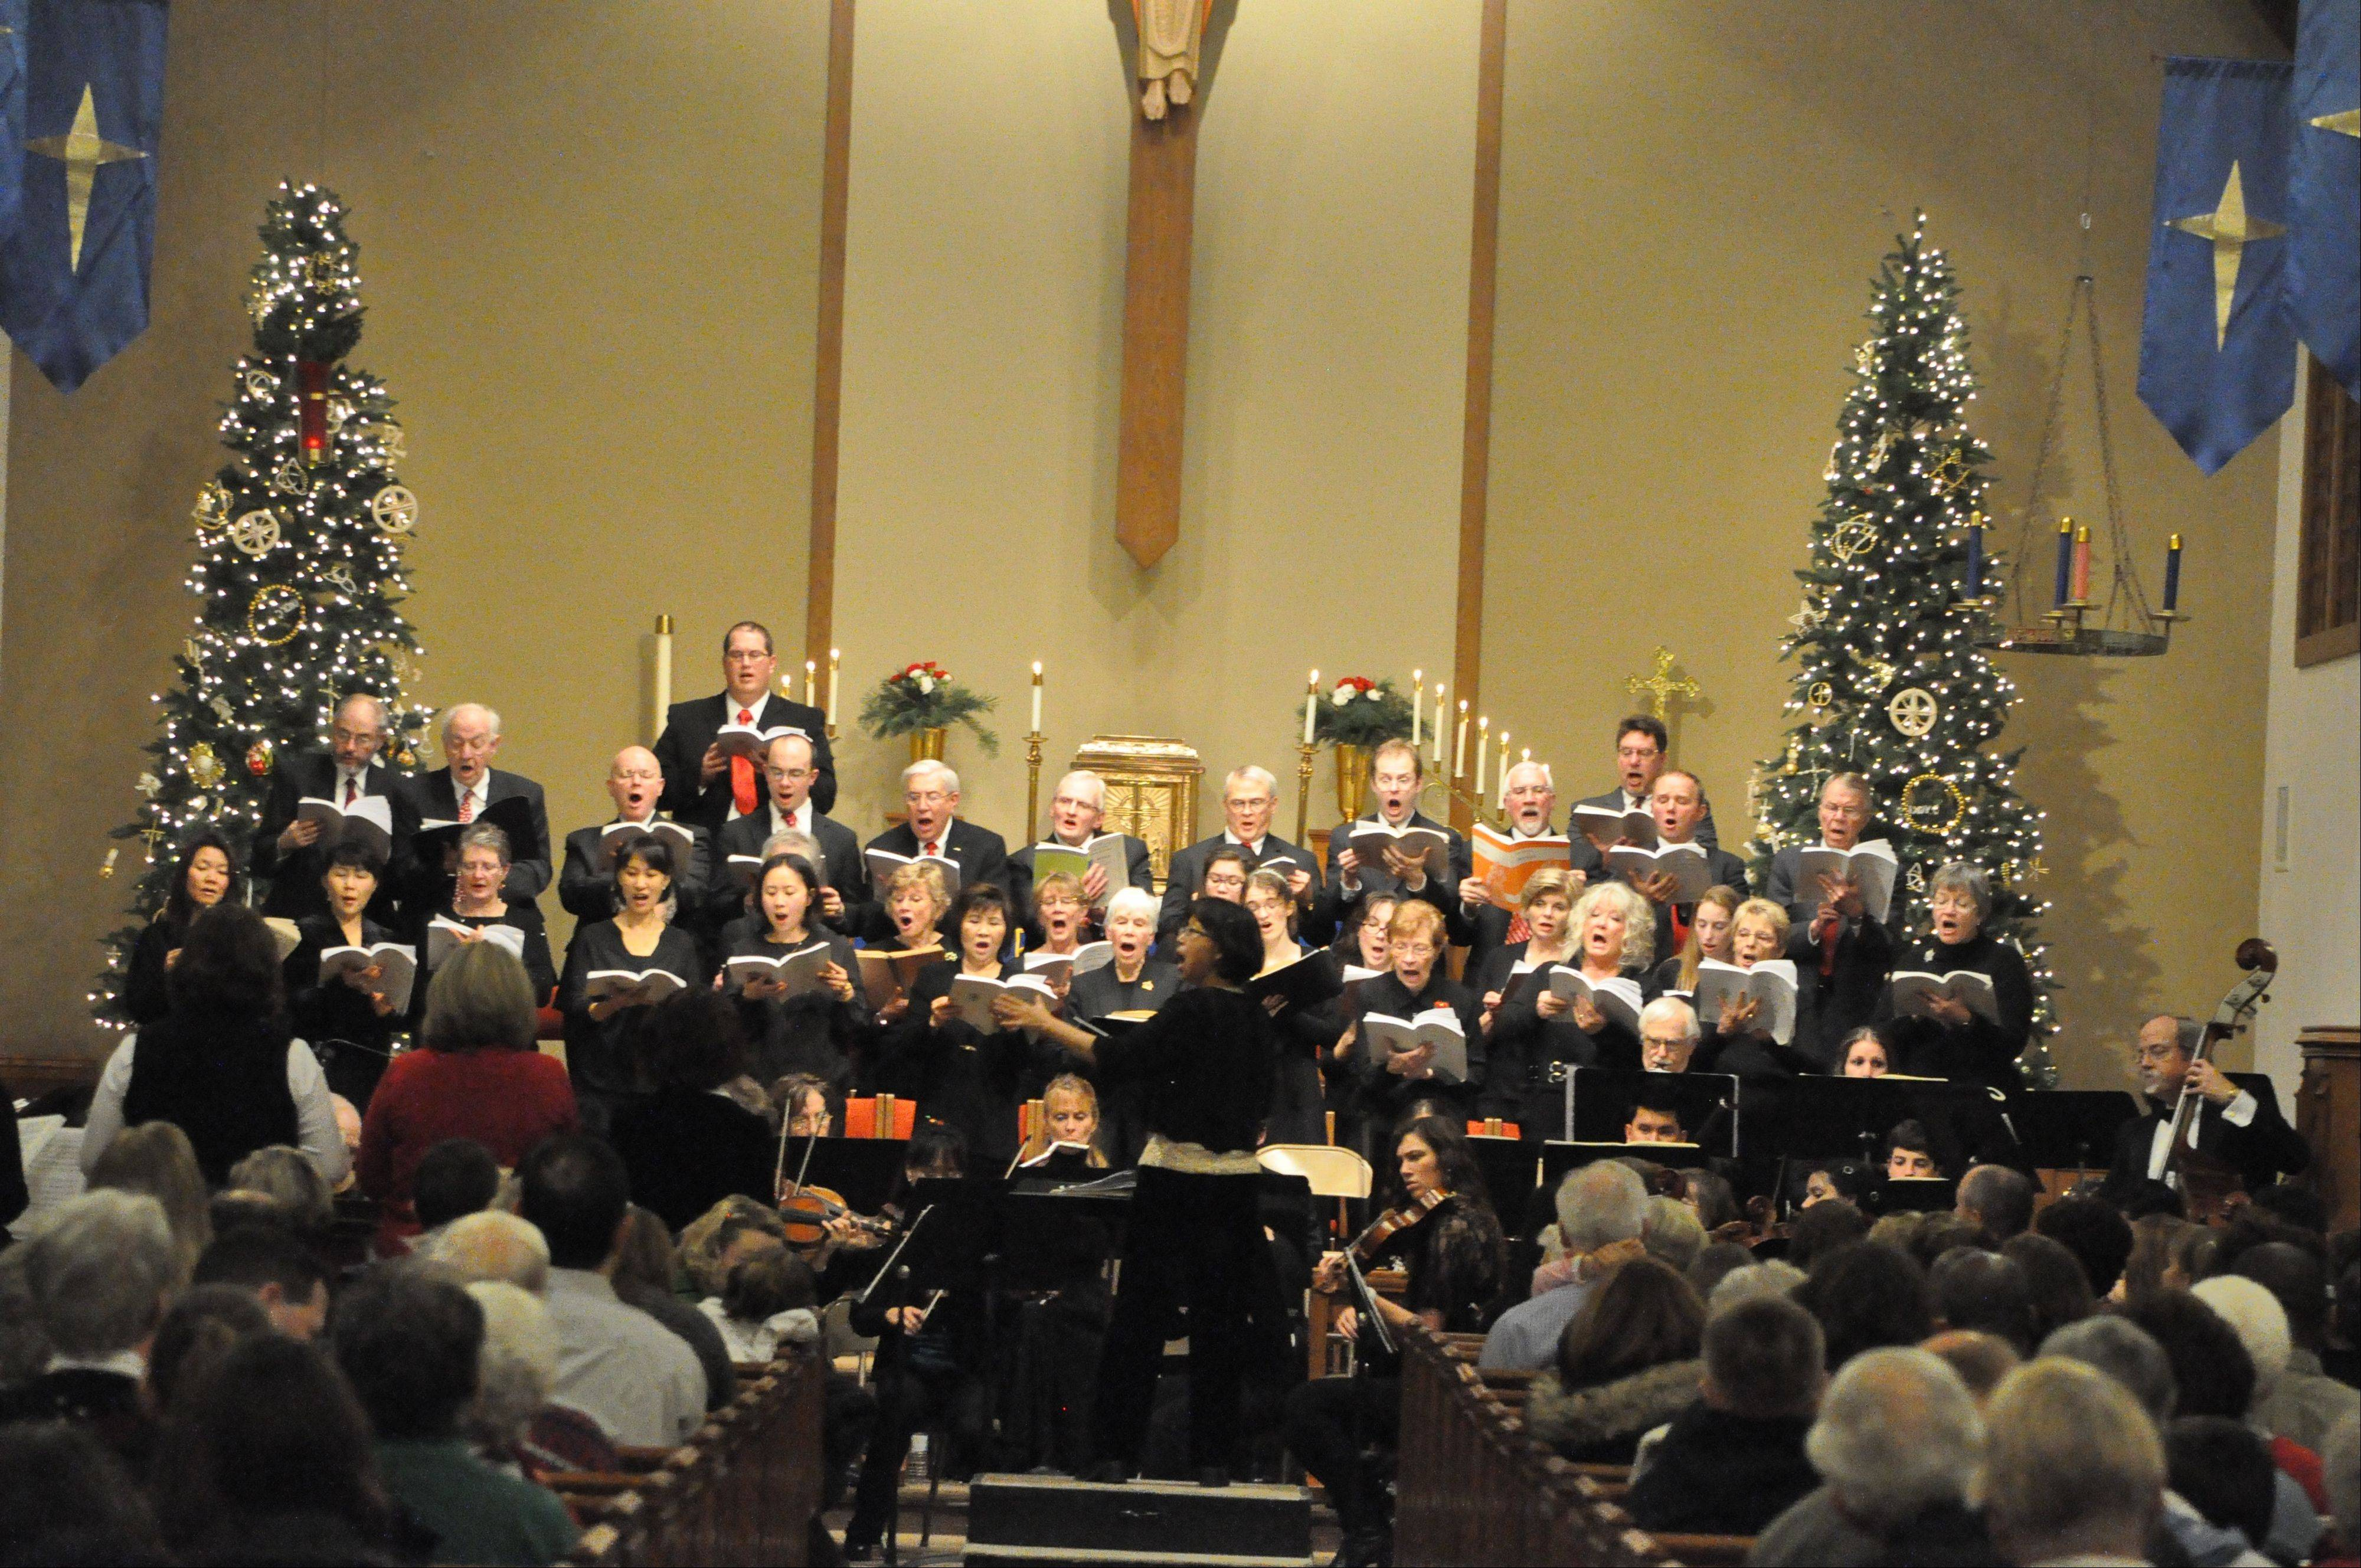 Our Savior Lutheran Church in Aurora will play host Sunday to the Hymn Festival.